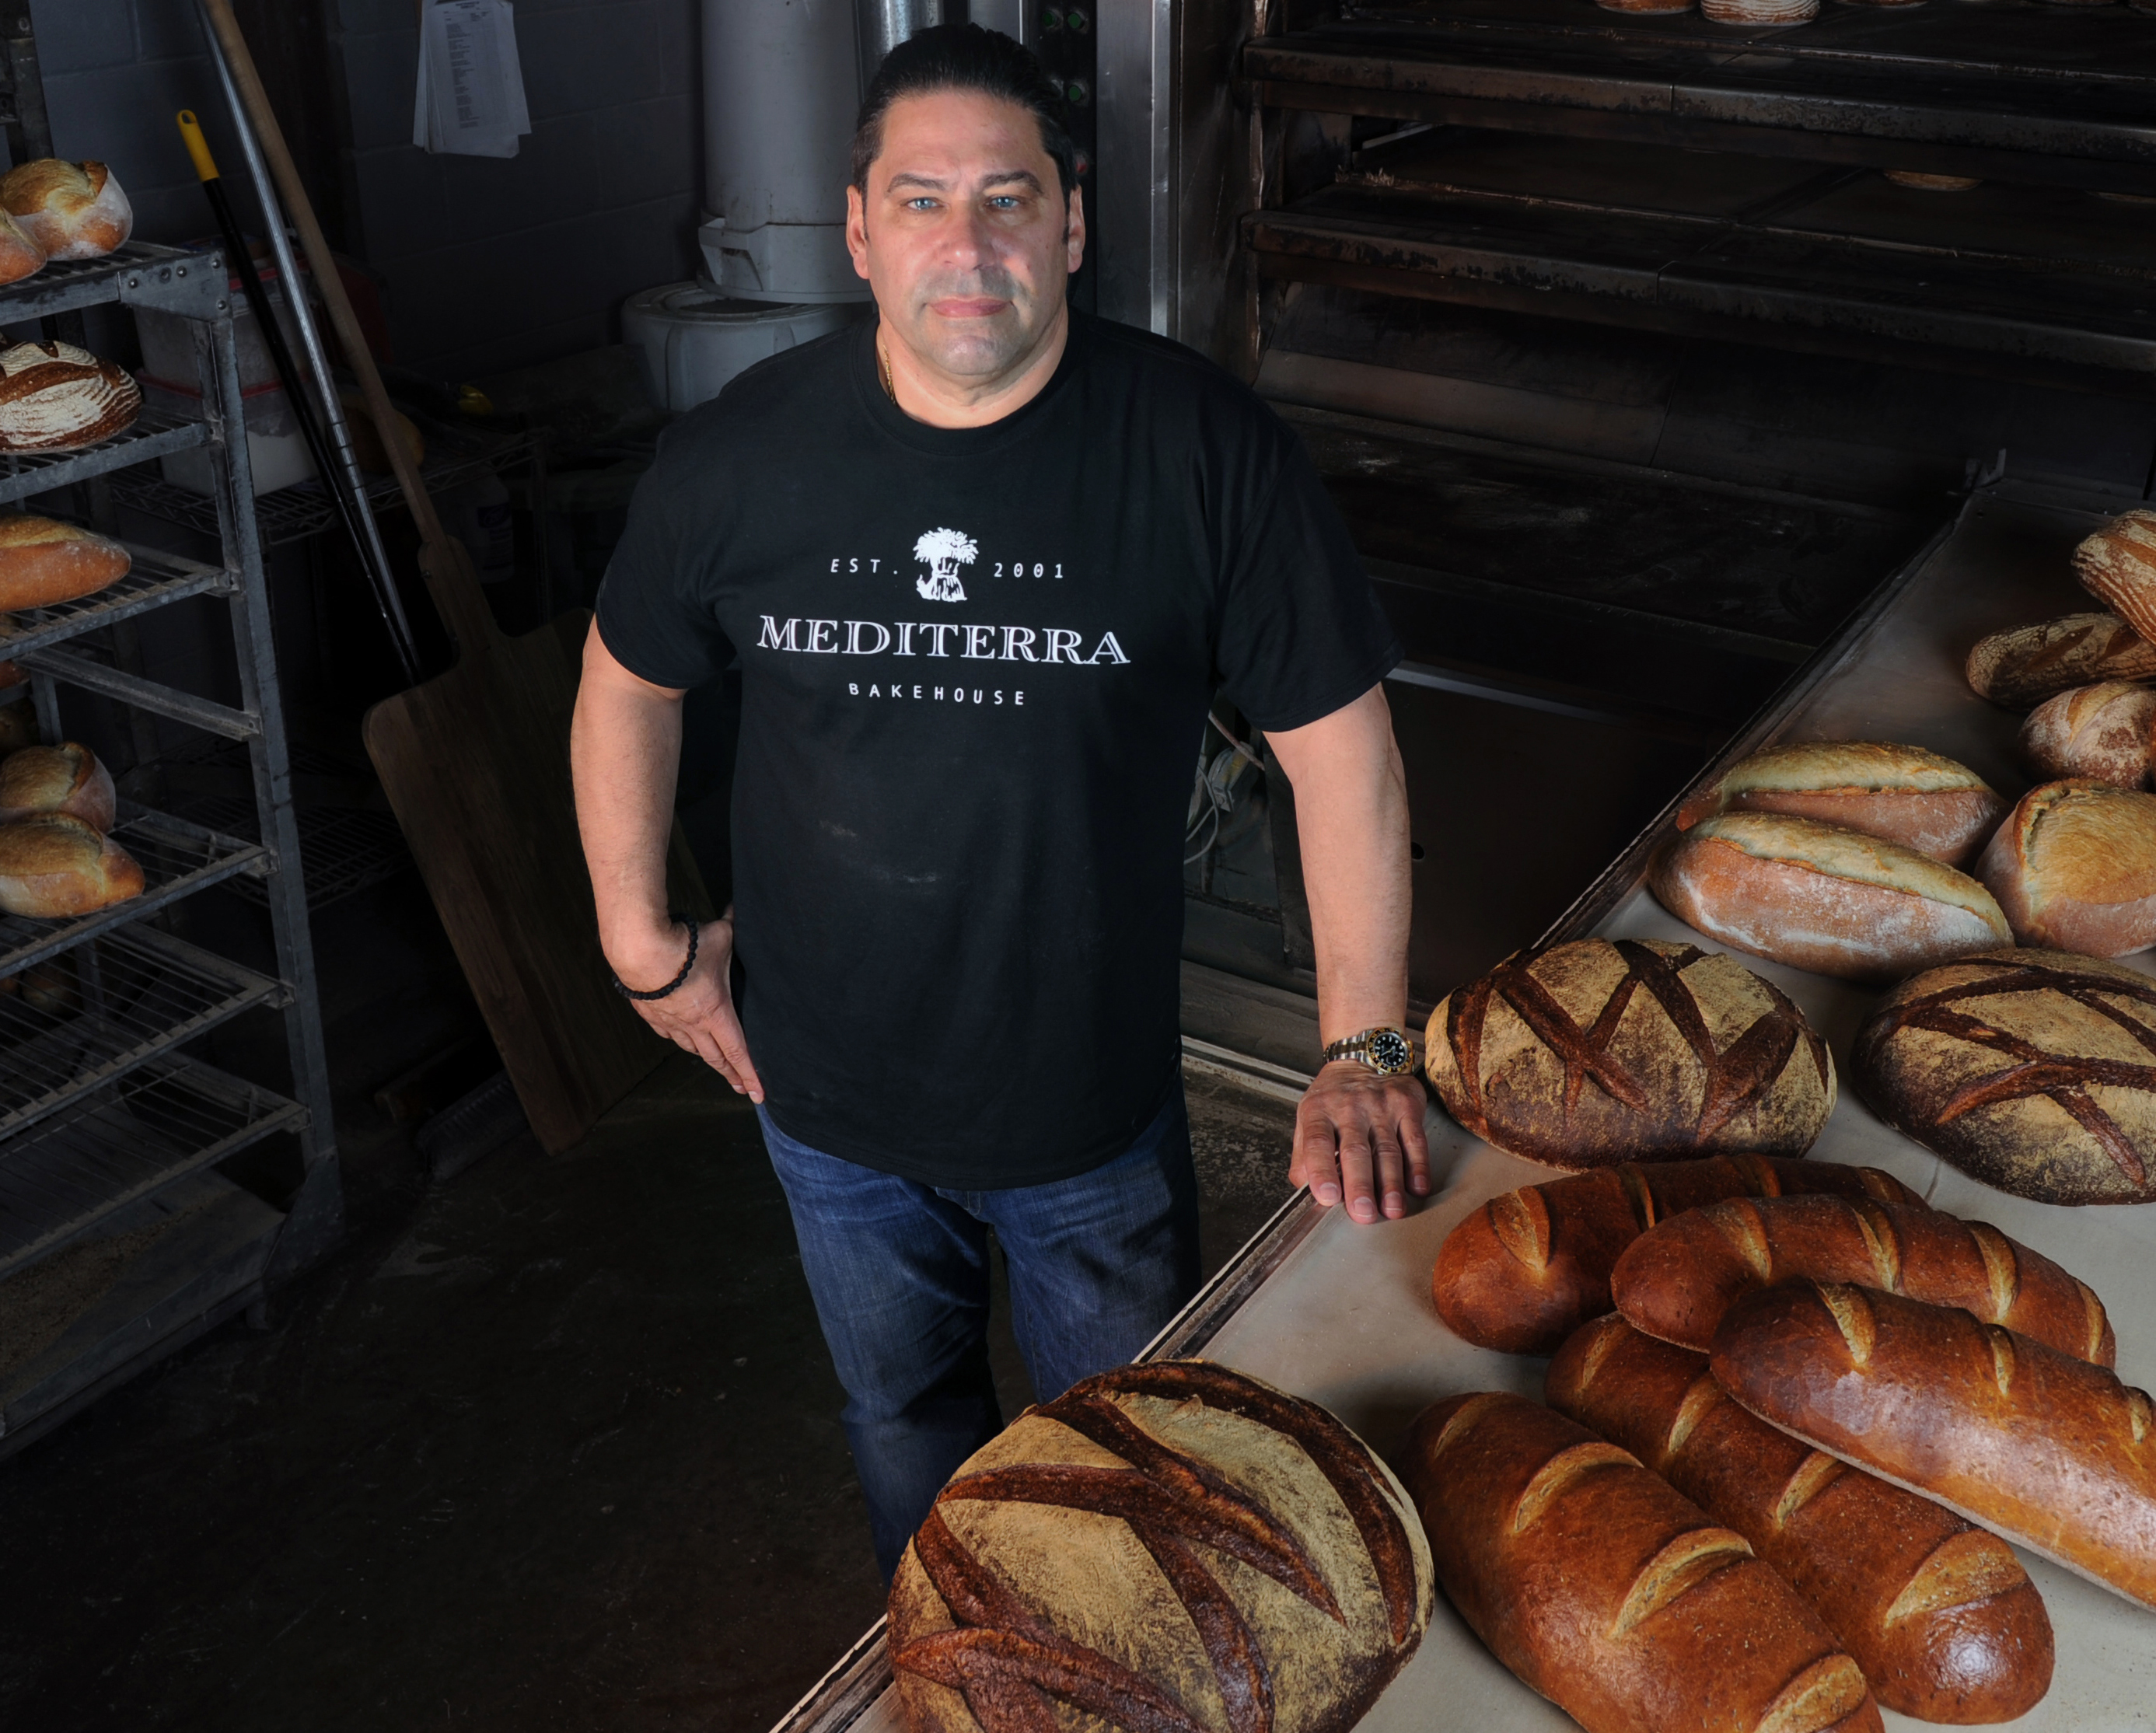 Pittsburgh's meister of artisan bread